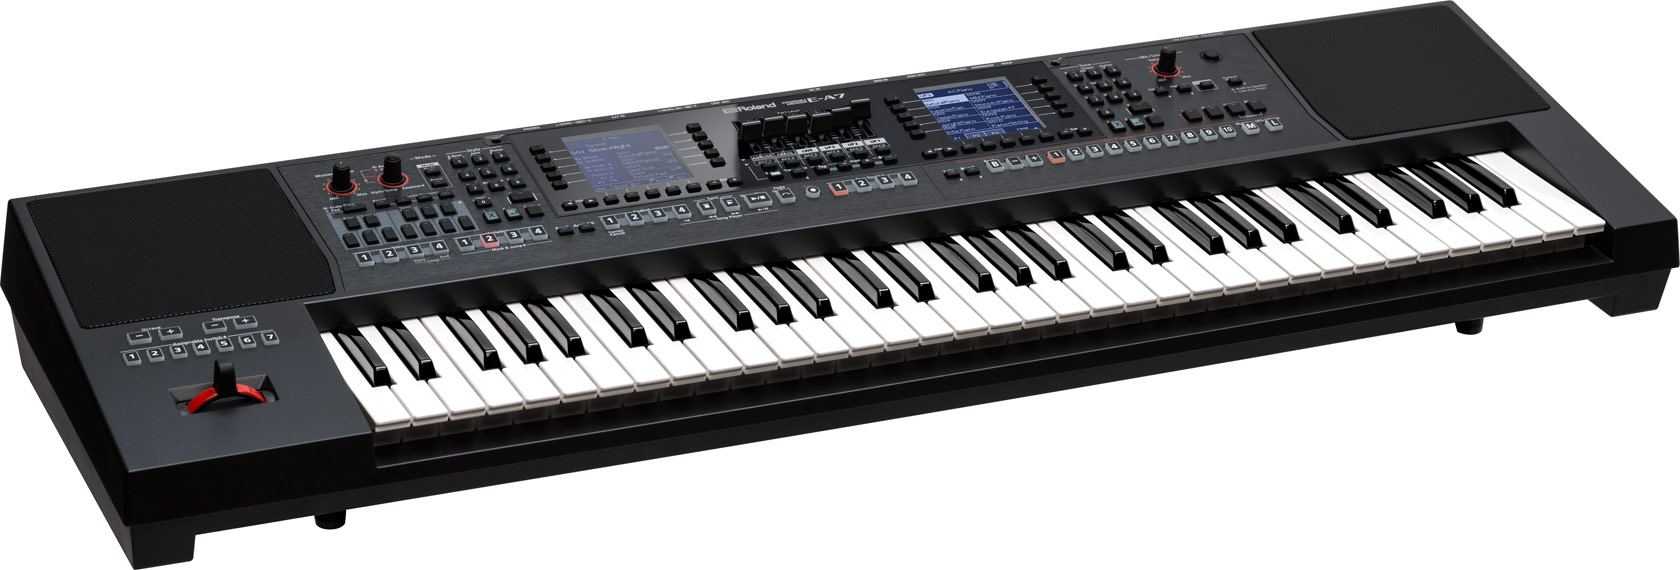 Roland e a7 portable arranger keyboard capital music for Yamaha credit card capital one